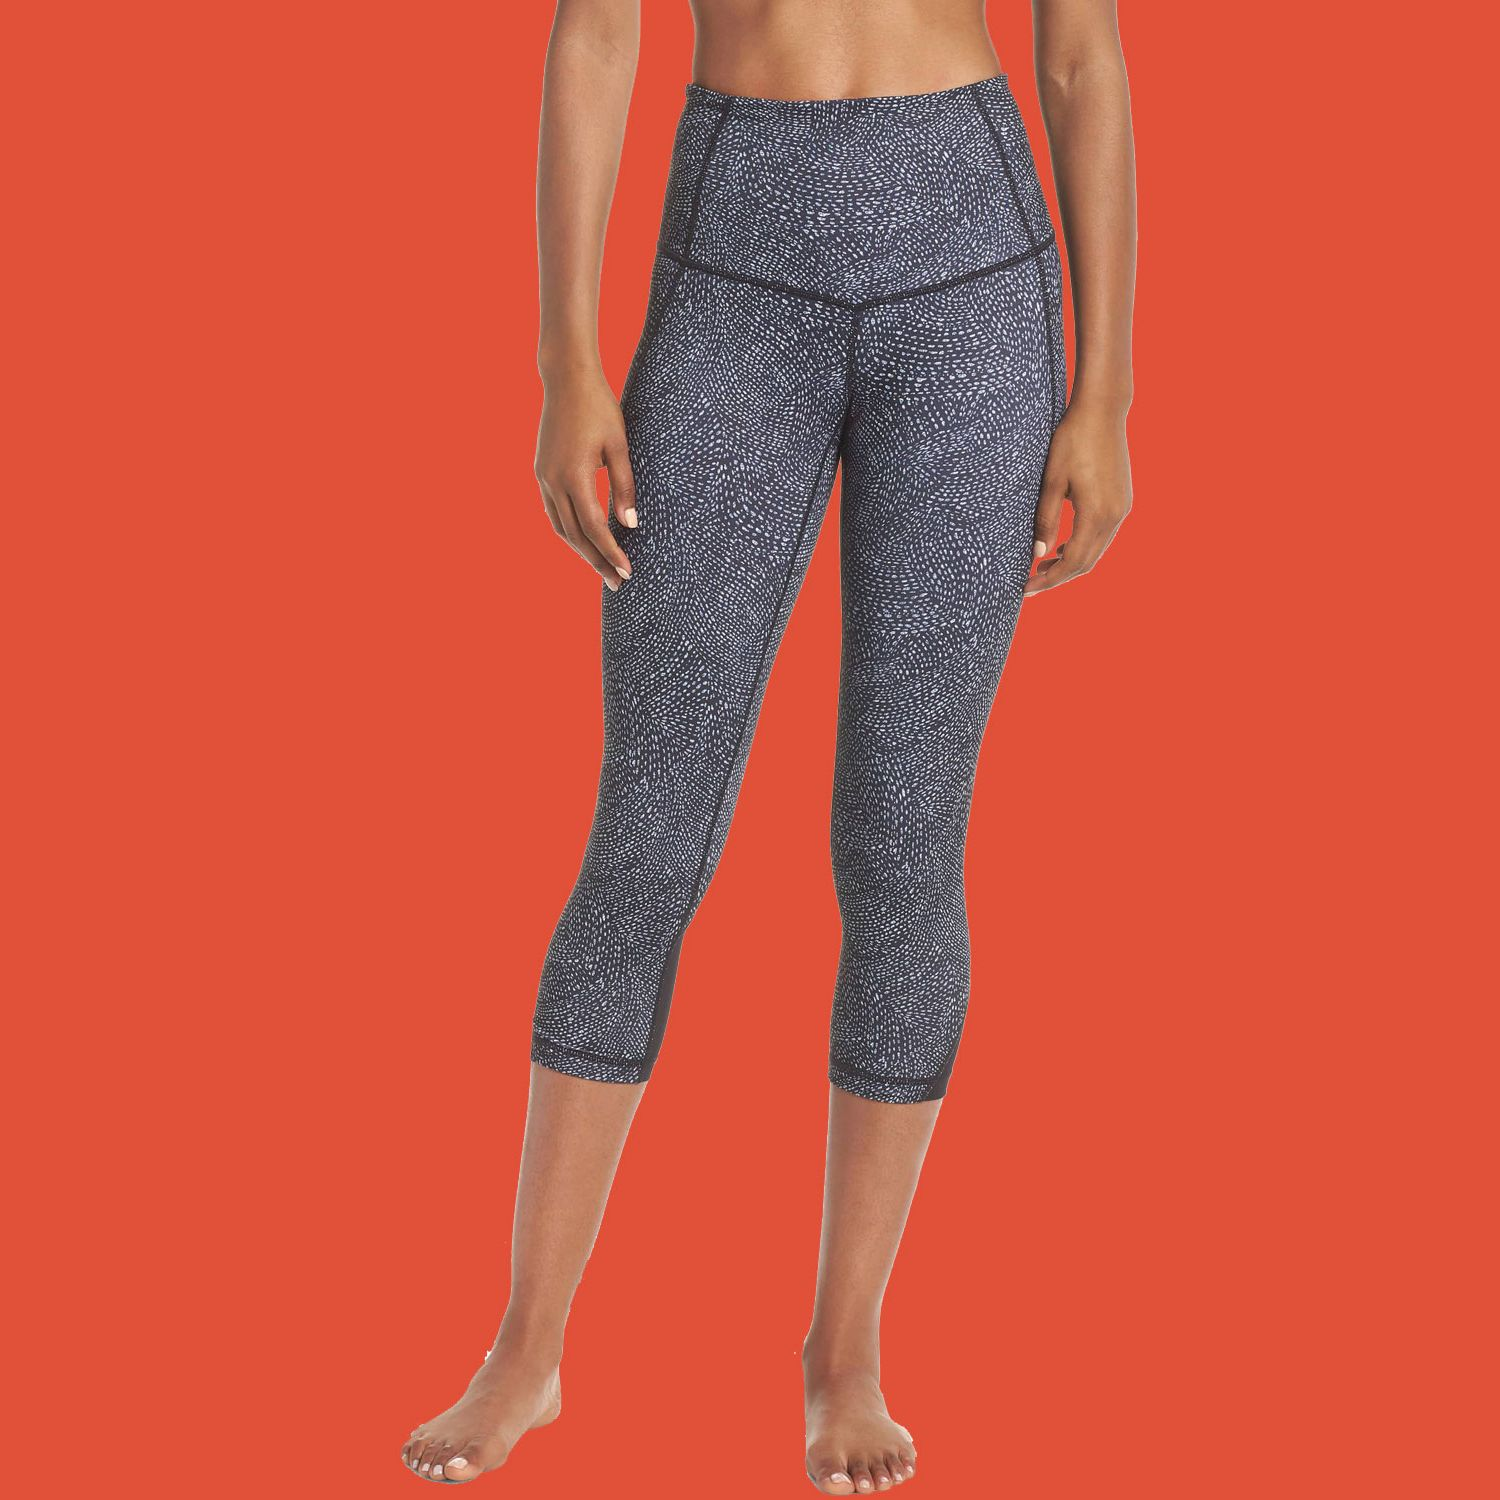 These Zella Leggings Have 1,000+ Perfect Reviews, and They're Only $27 Right Now